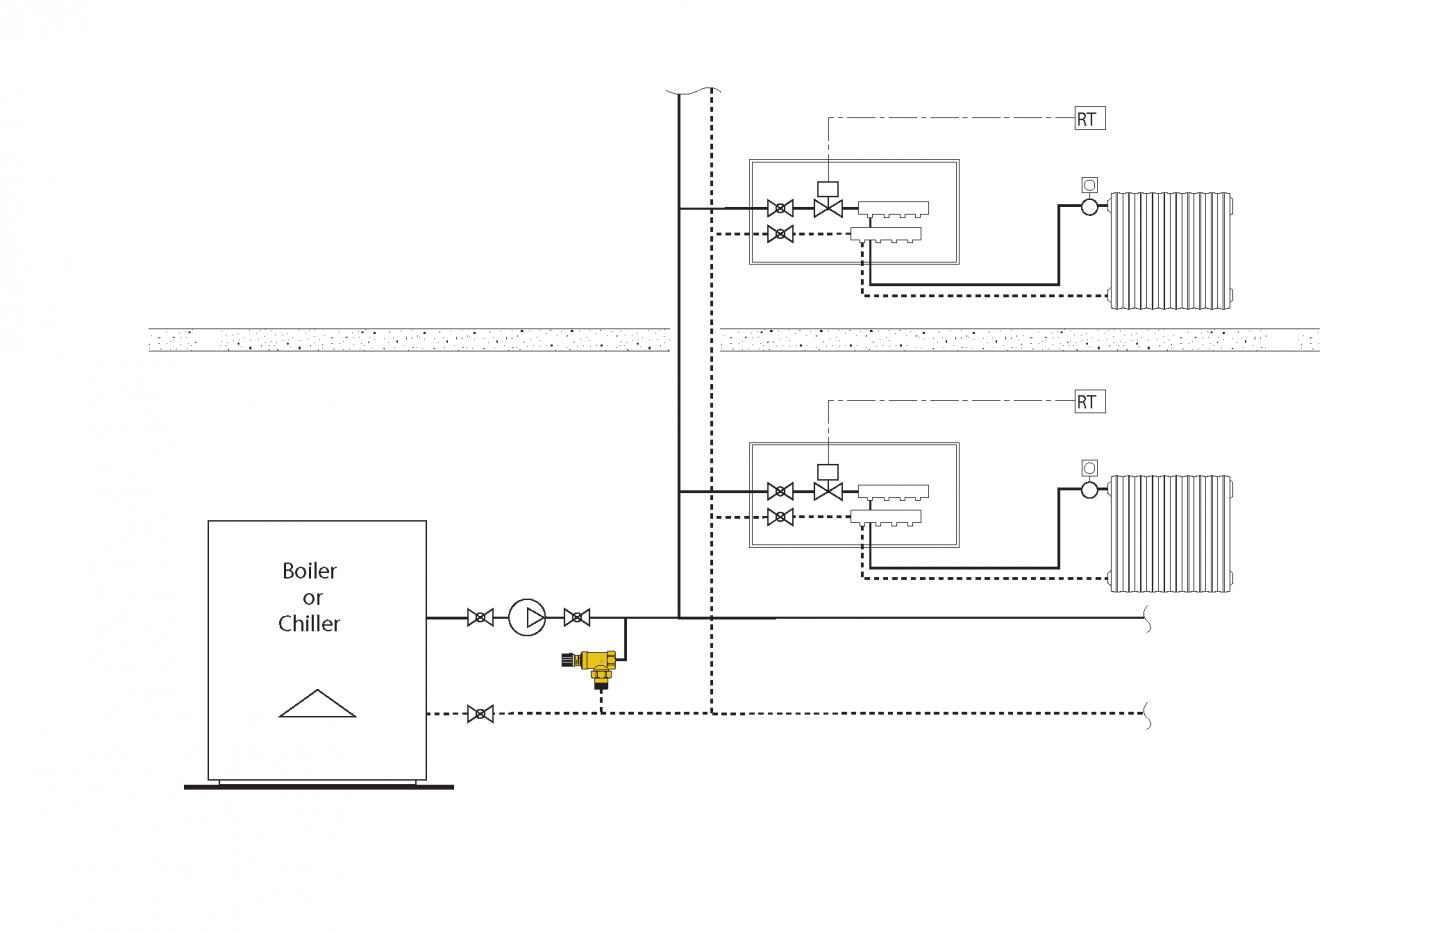 How Does A Differential Pressure Bypass Valve Work Caleffi. Differential Pressure Bypass Valve Schematic. Wiring. For A Water Pressure Regulator Wiring Diagram At Scoala.co